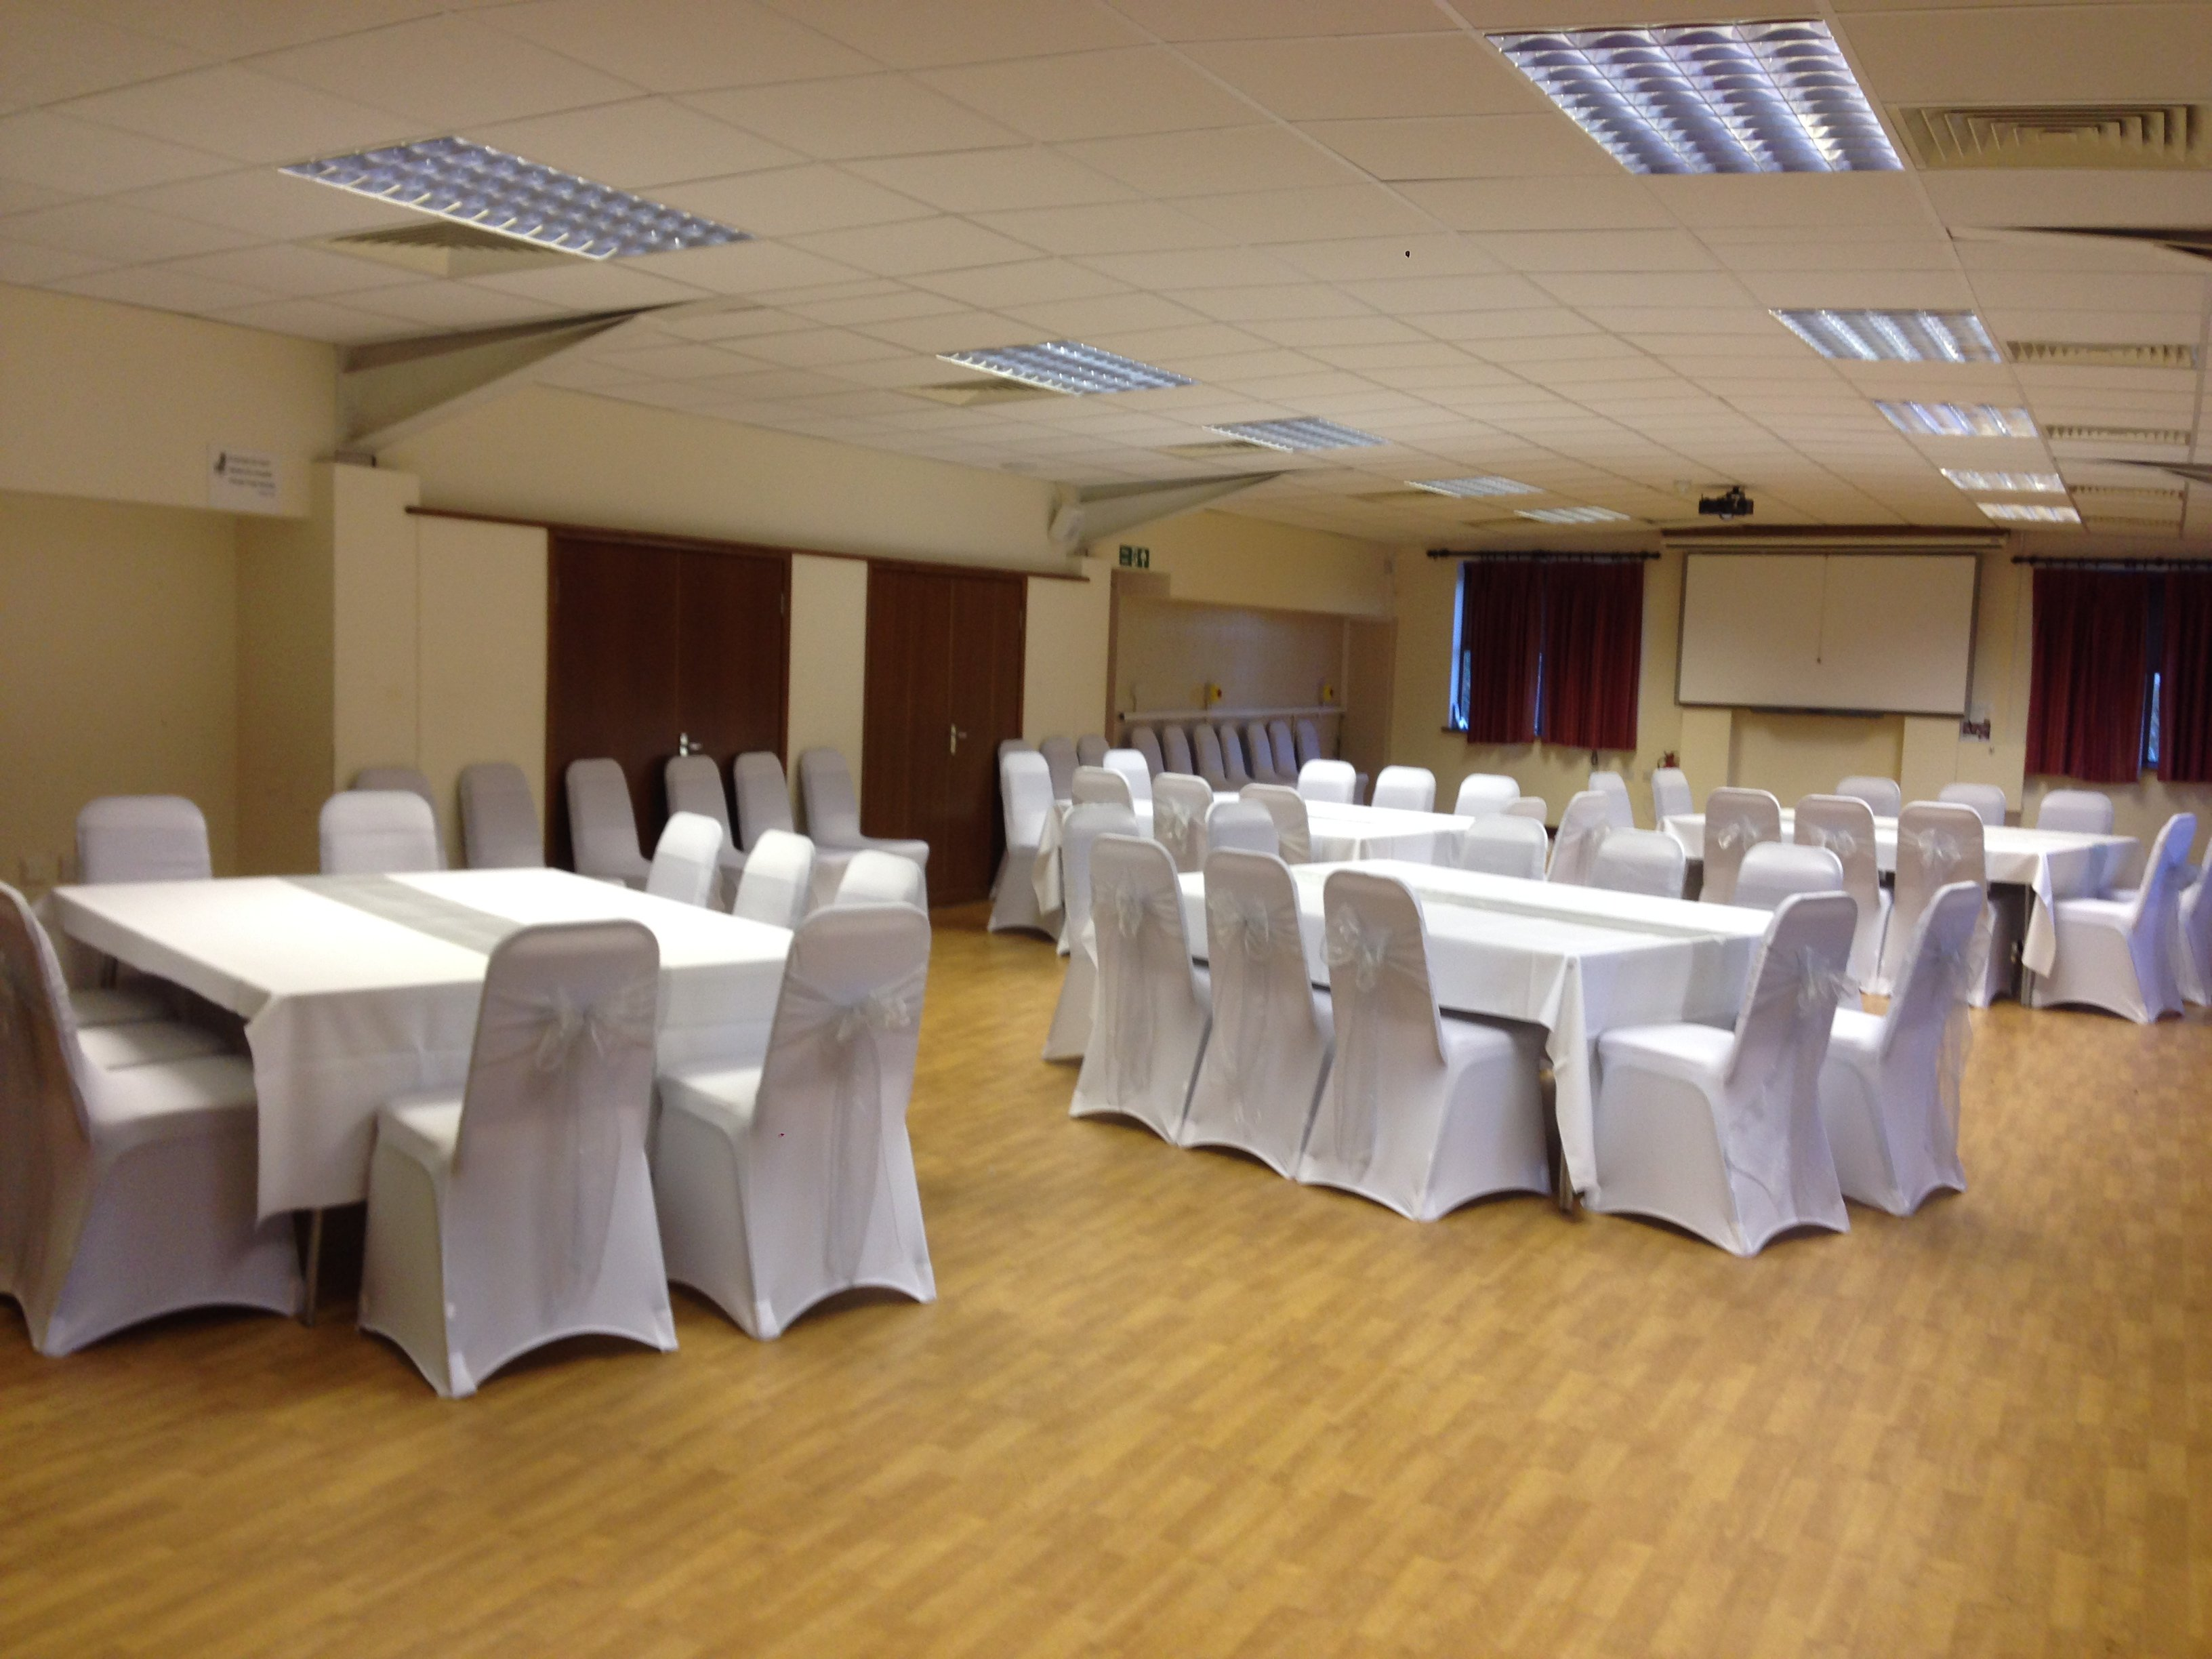 Silver organza sashes and white lycra chair covers at Barleylands function room